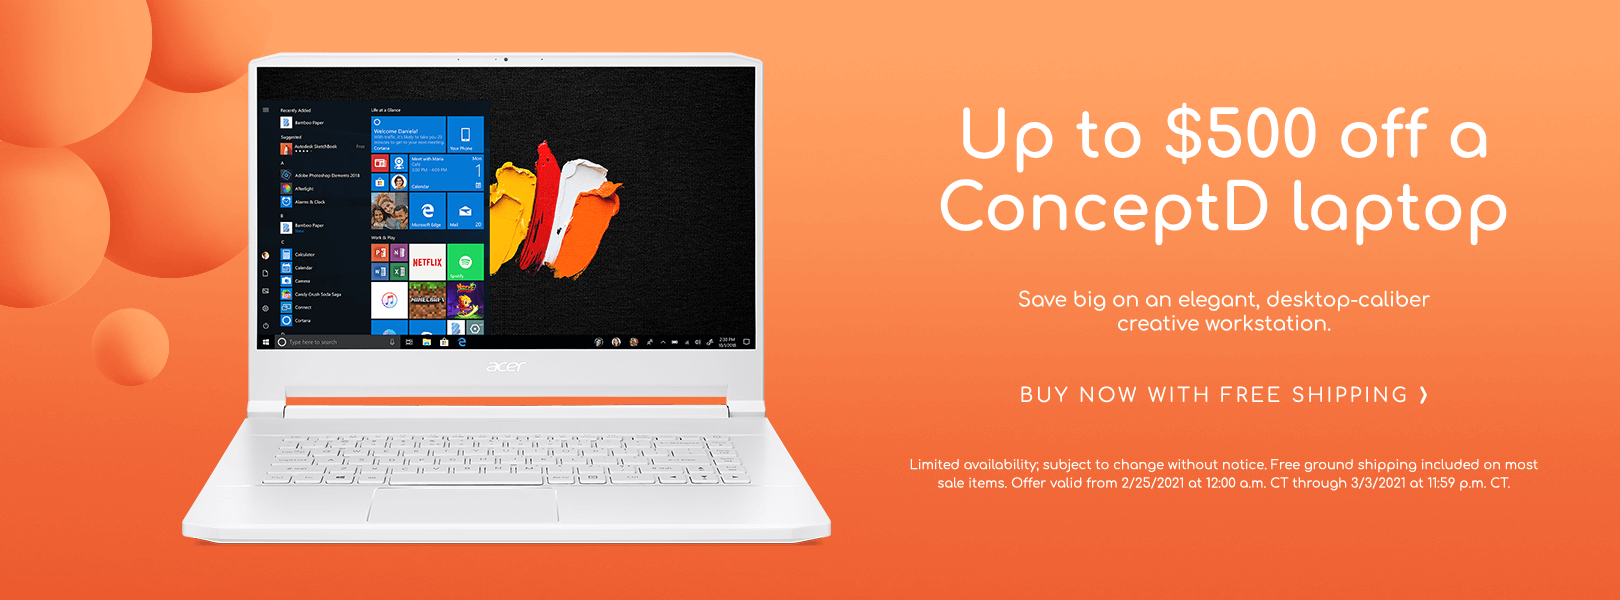 Save up to $500 on ConceptD Laptops